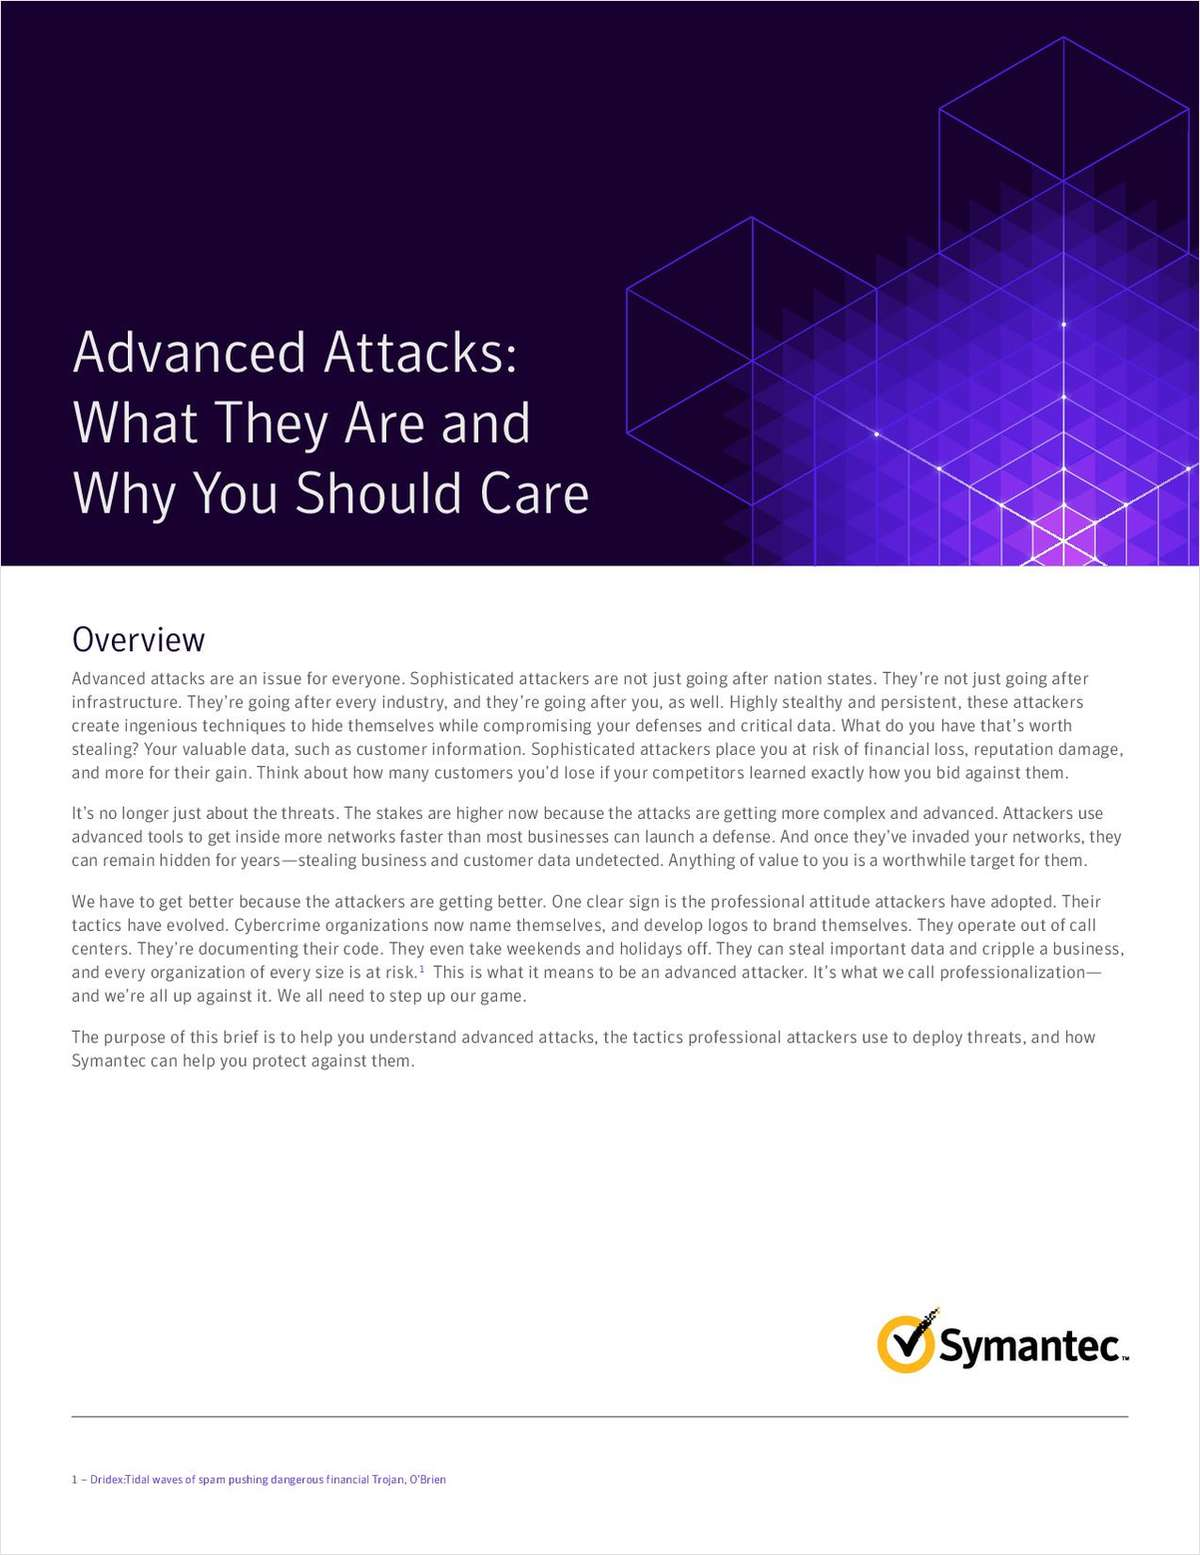 Advanced Attacks: What They Are and Why You Should Care